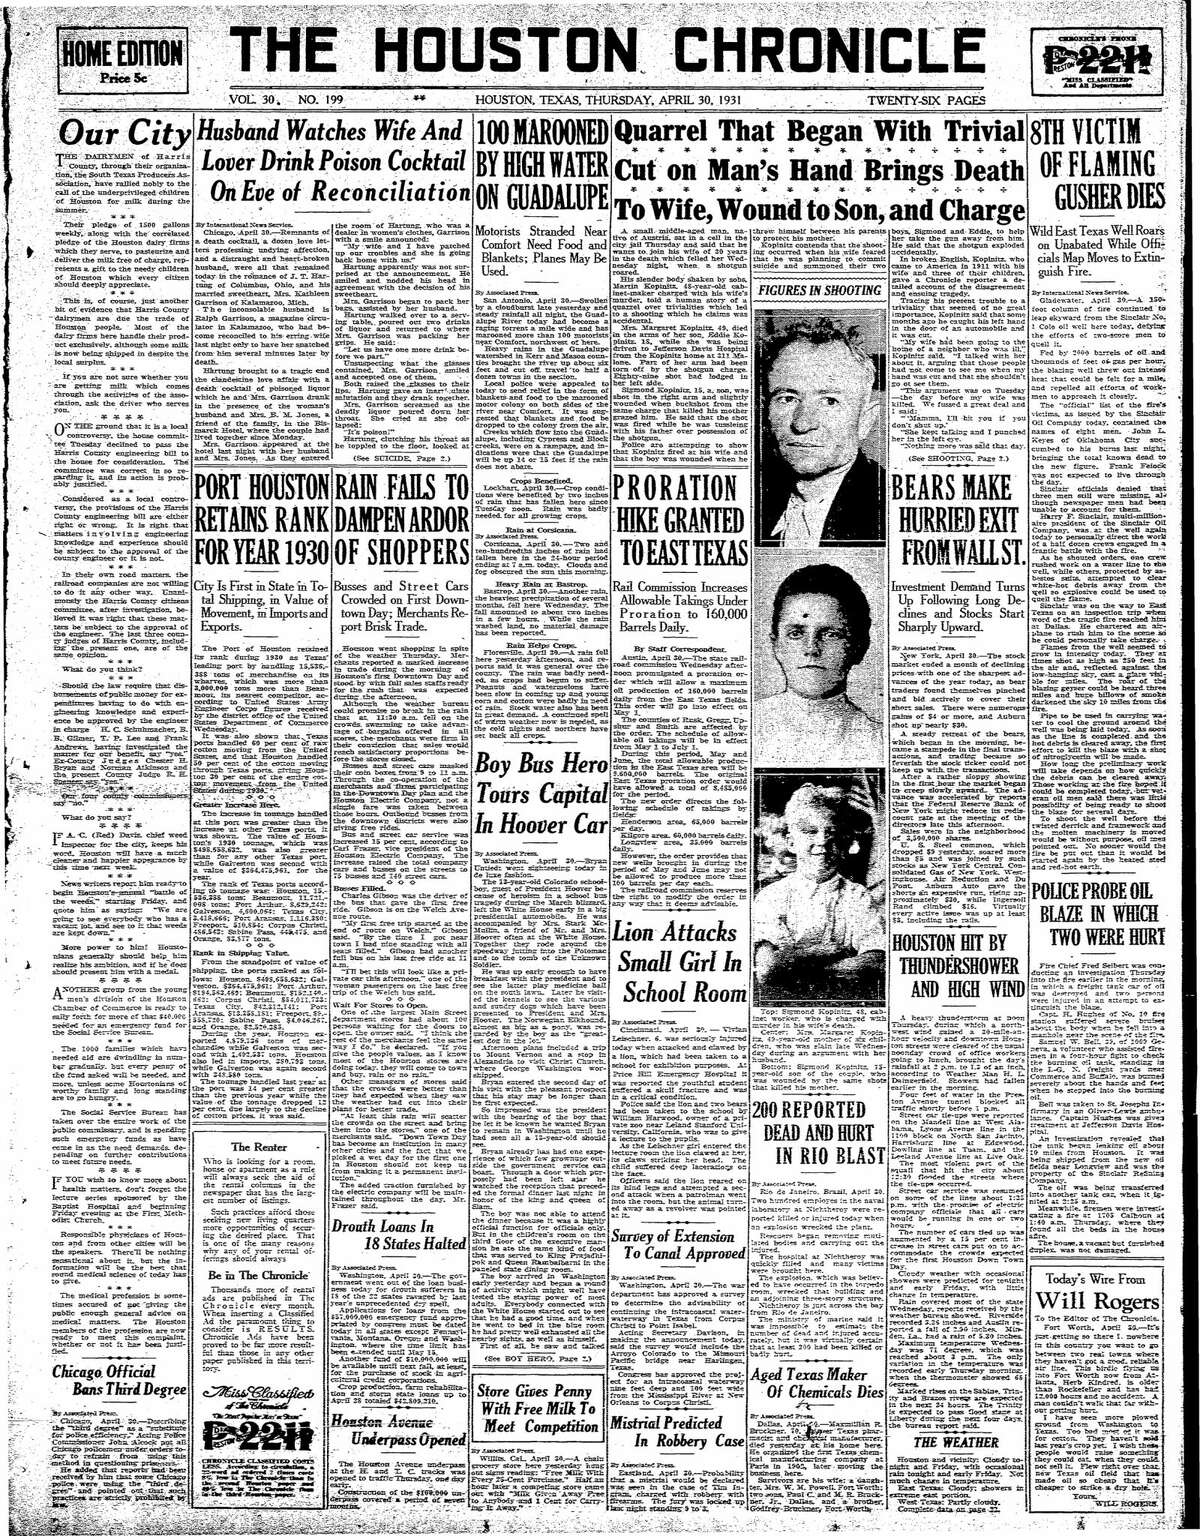 Houston Chronicle front page from April 30, 1931.